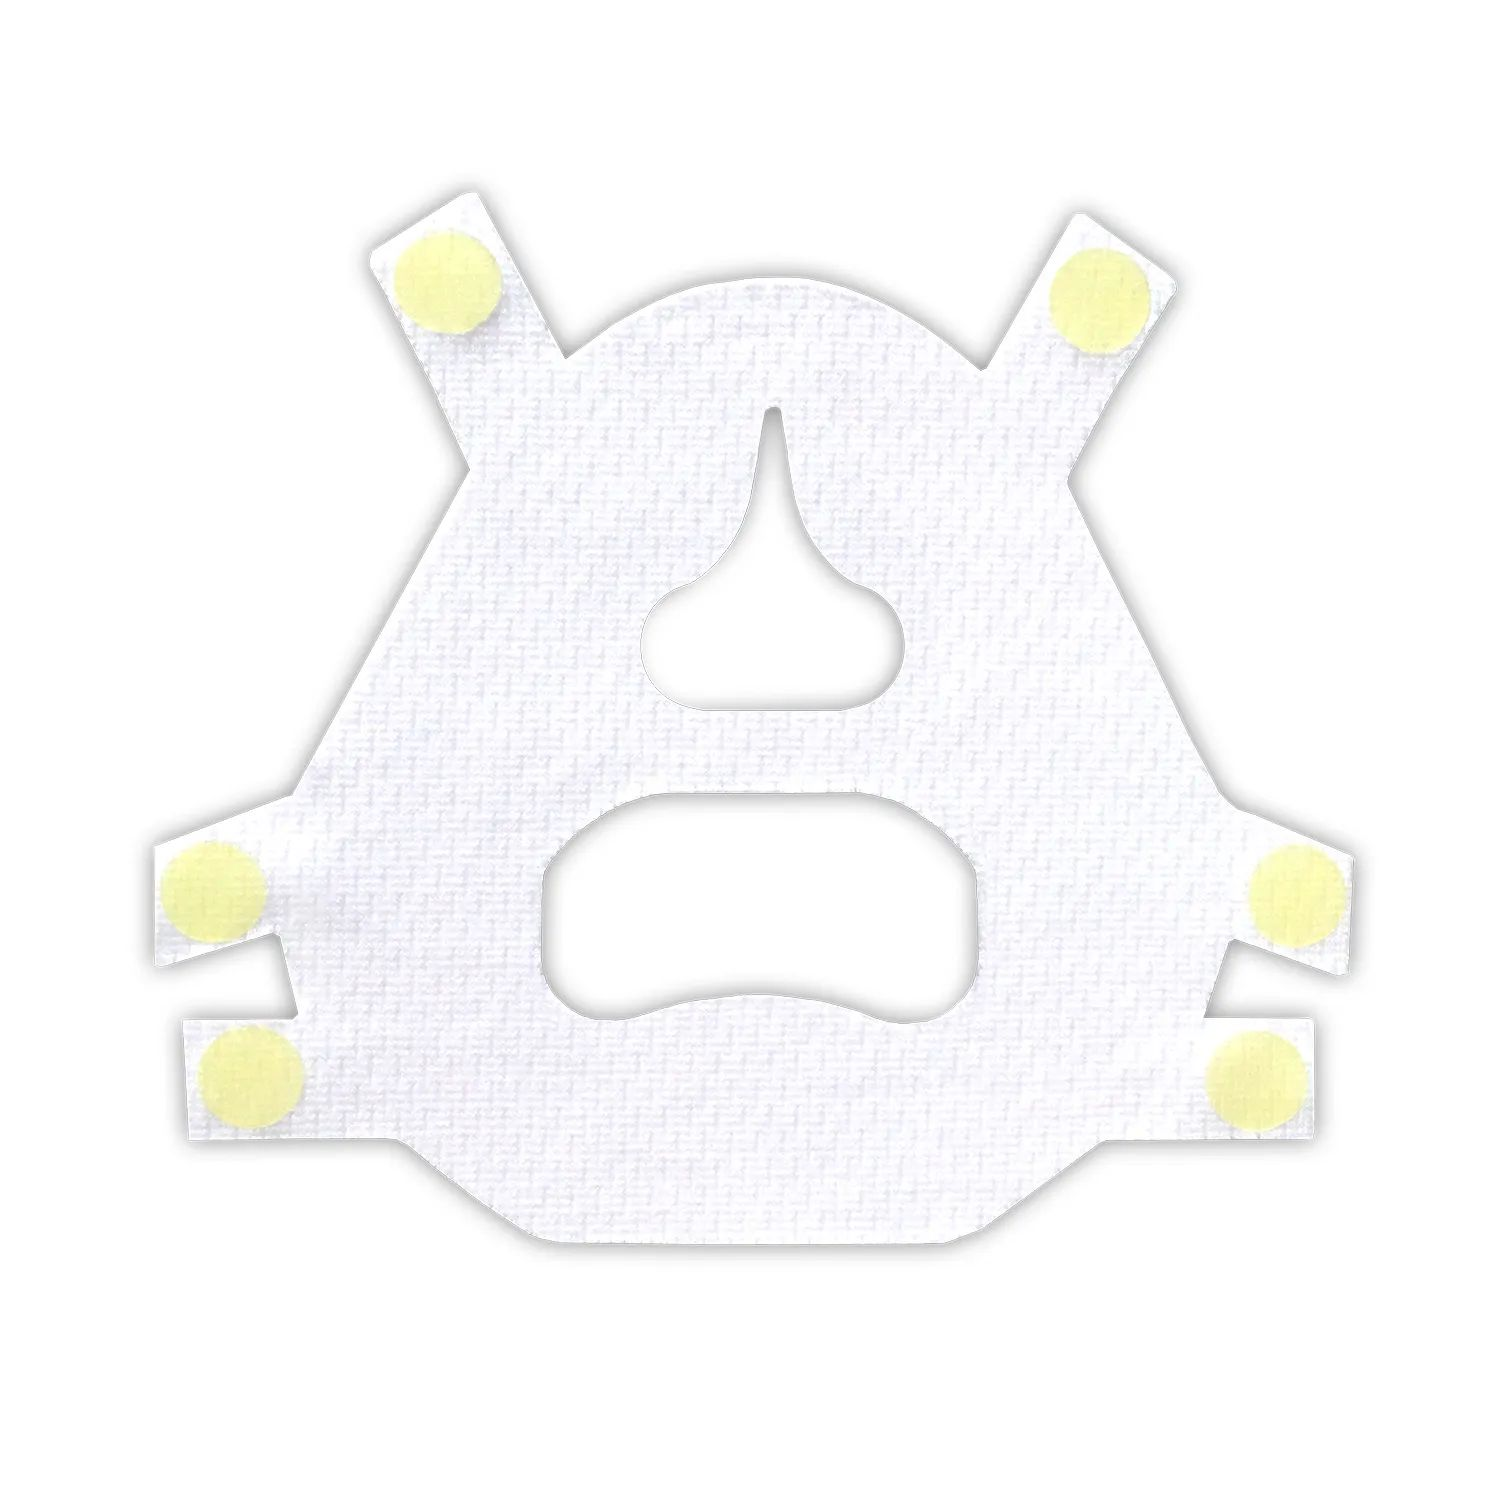 cpap mask liners for minimal contact full face cpap masks by silent night